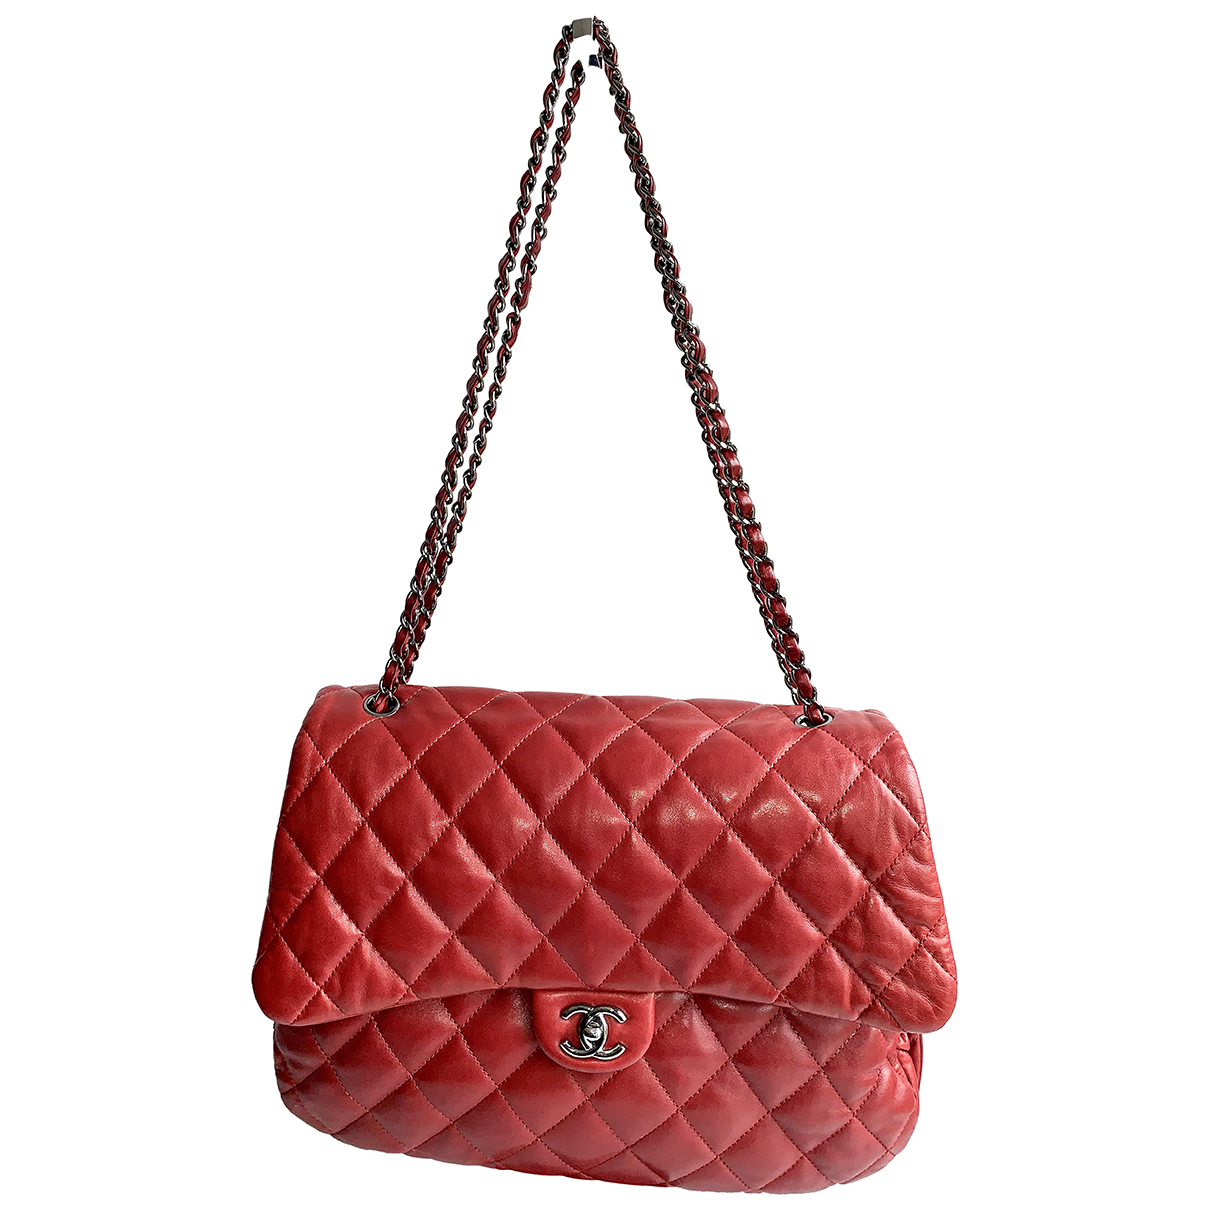 Chanel Timeless/Classique Red Leather handbag for Women N